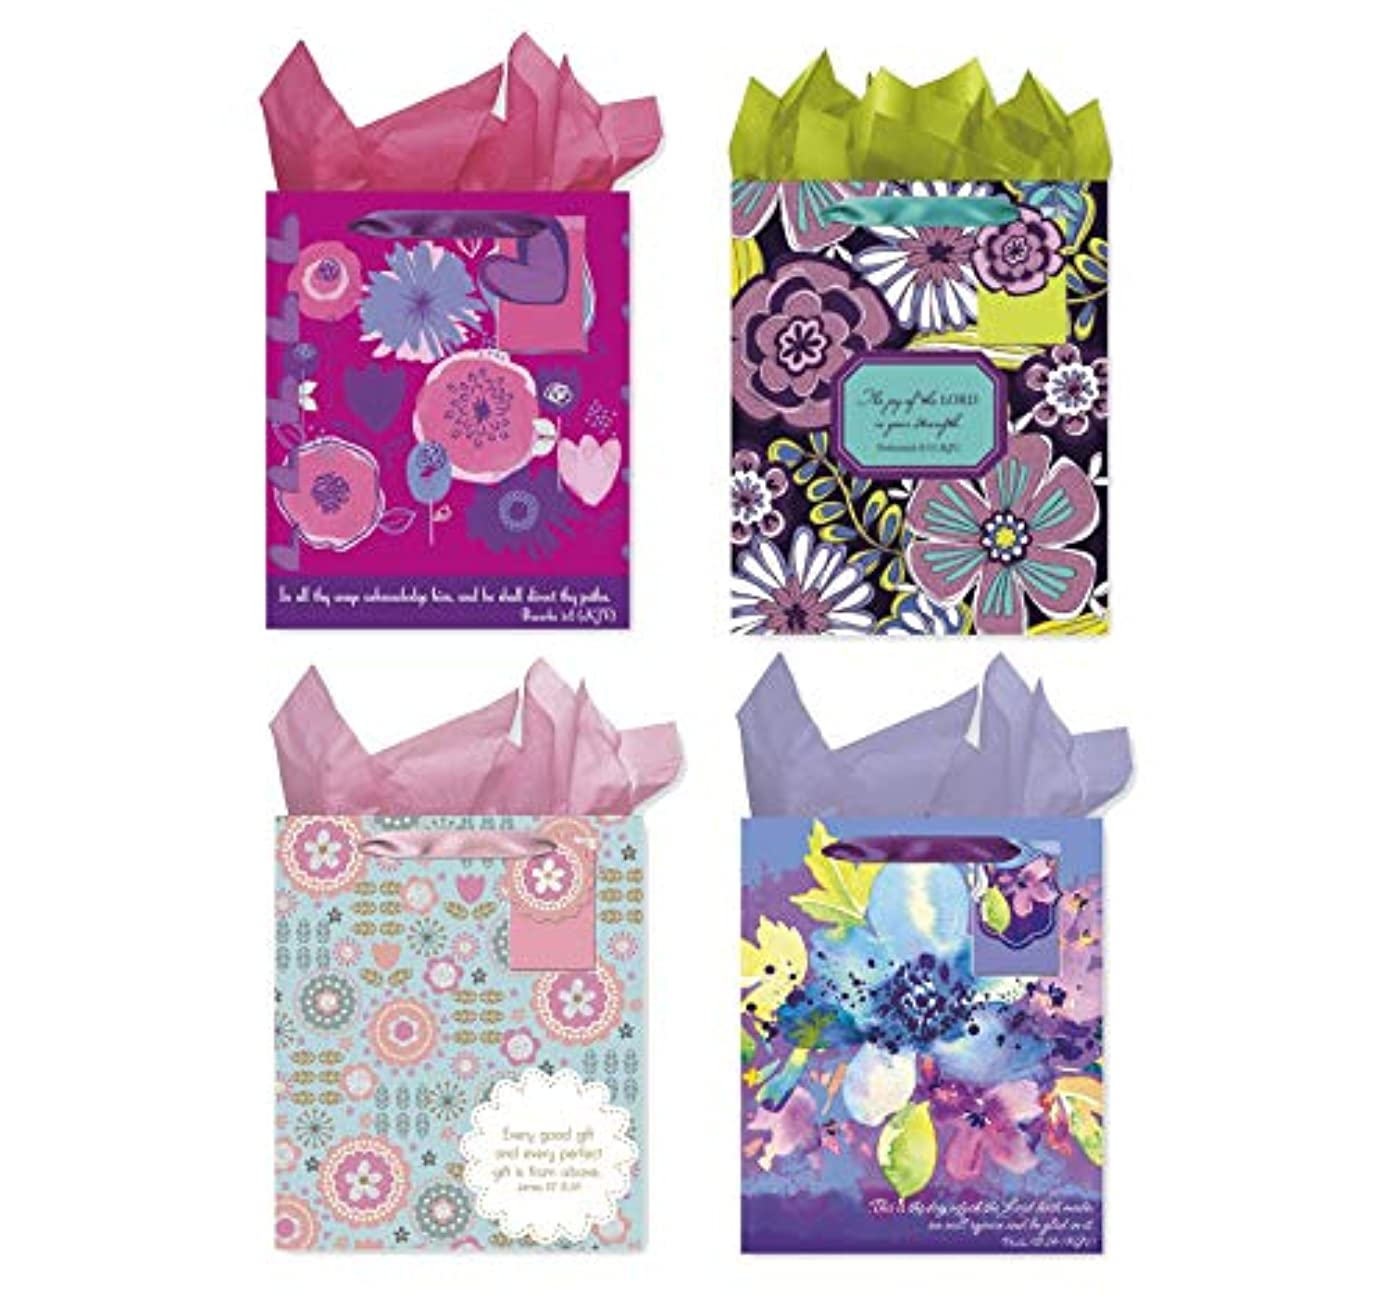 Christian Birthday Gift Bags with Tissue Paper - 4 Bible Verse Bags with Tissue